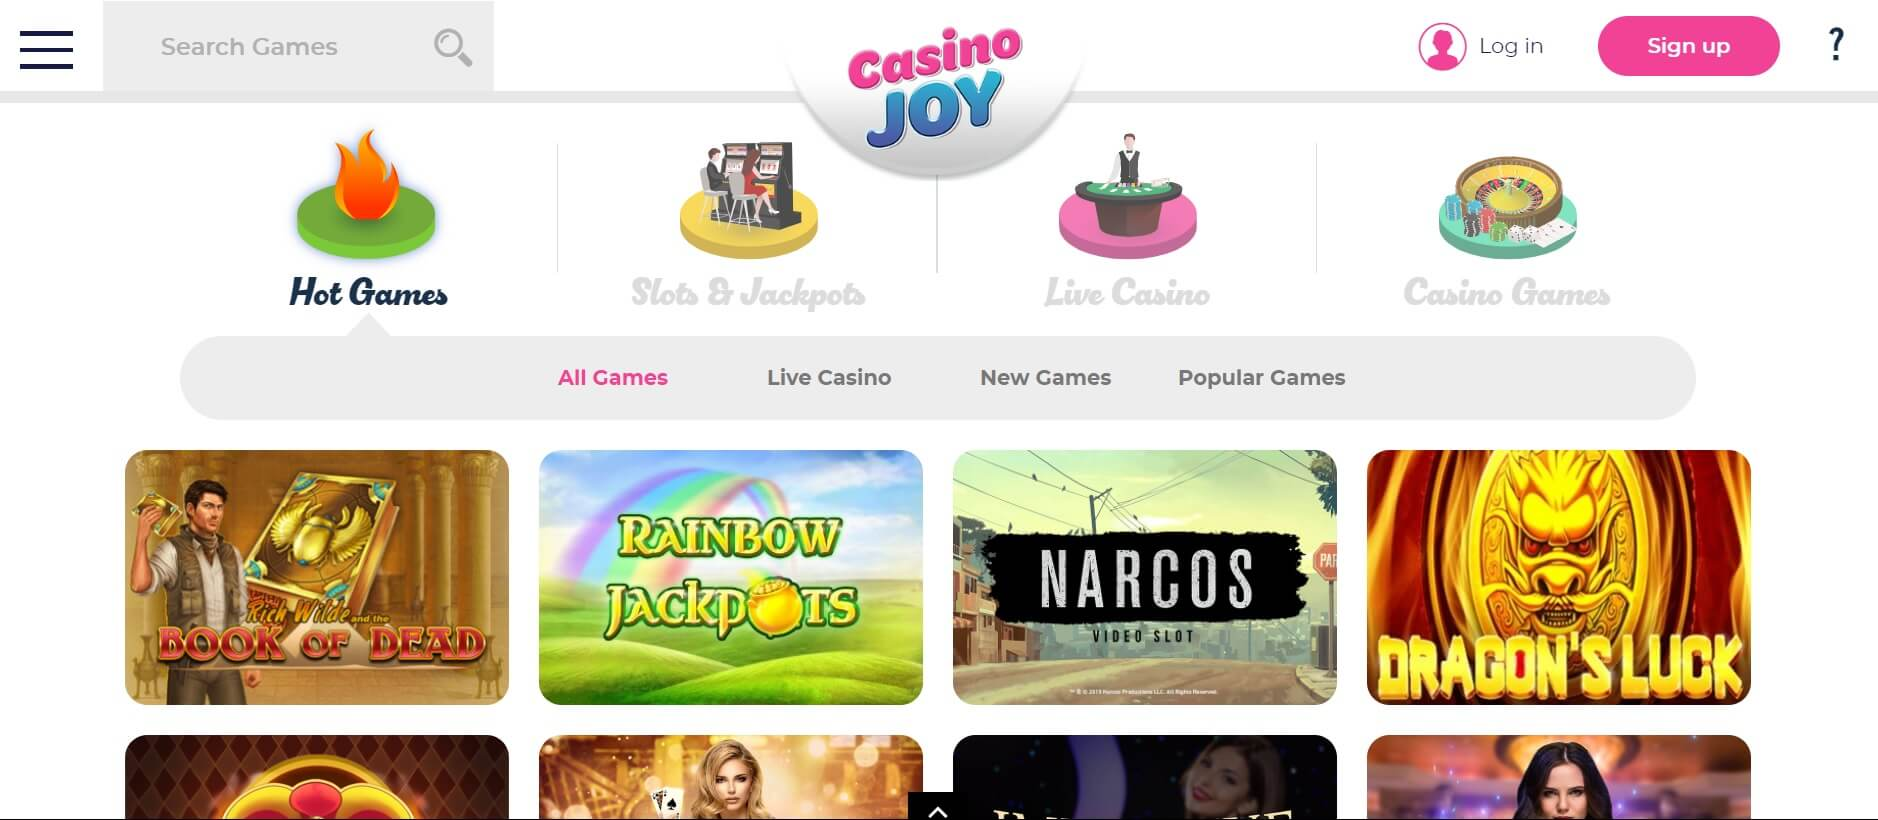 casino joy games canada